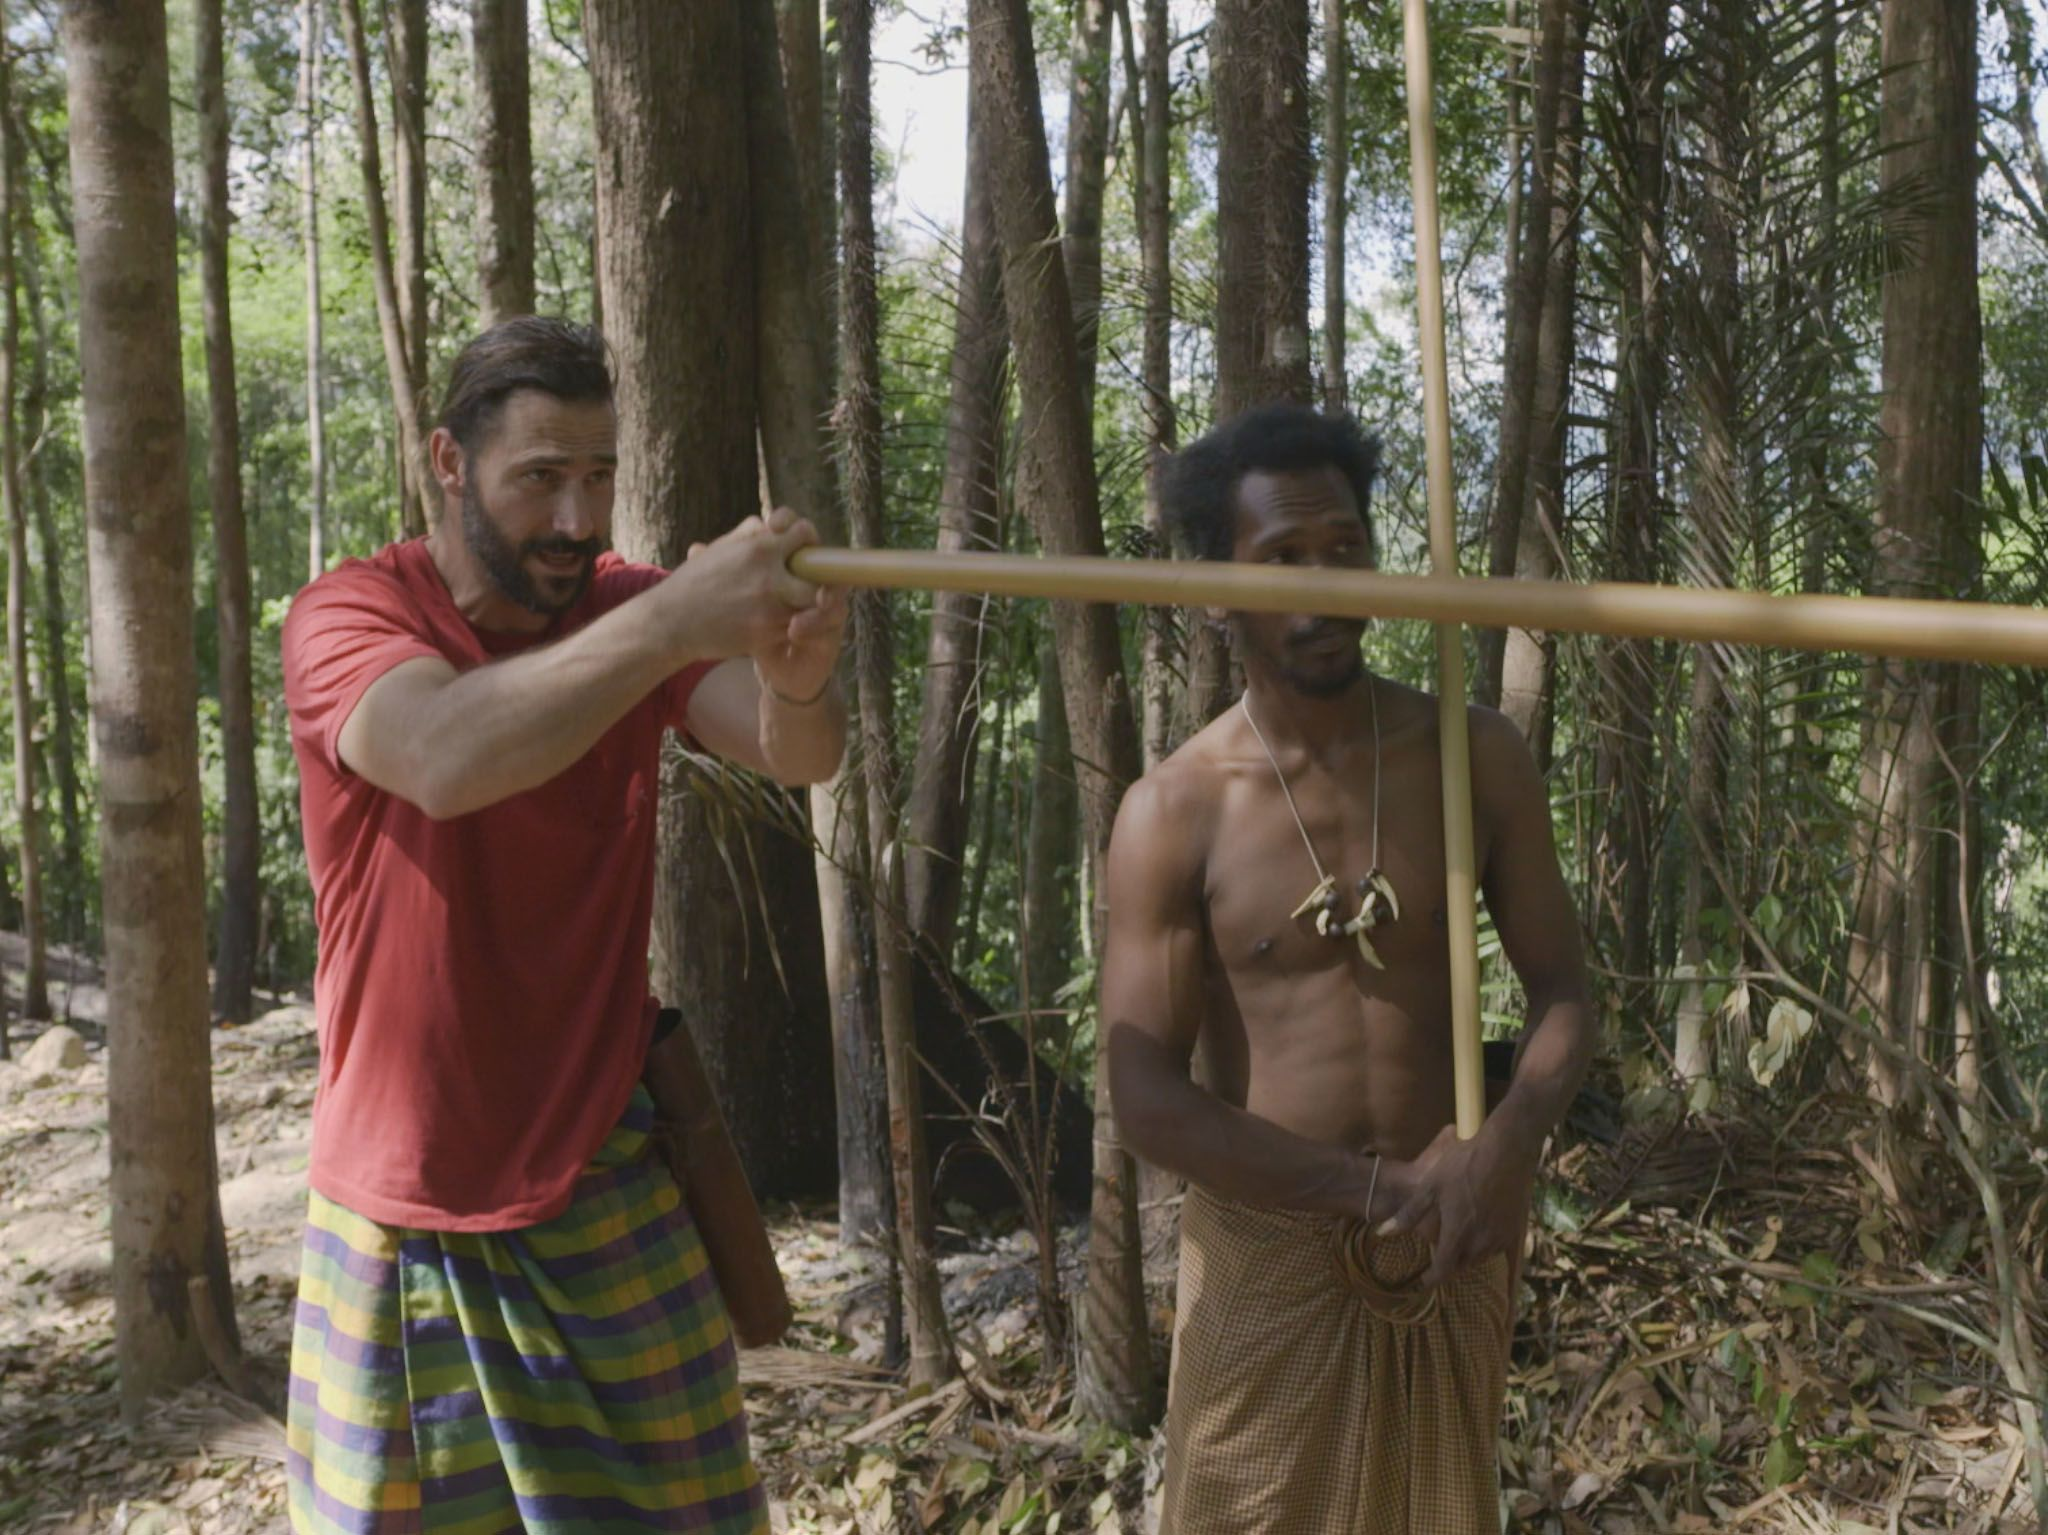 Hazen holding a dart blow gun practicing shooting targets. This image is from Primal Survivor. [Photo of the day - April 2021]